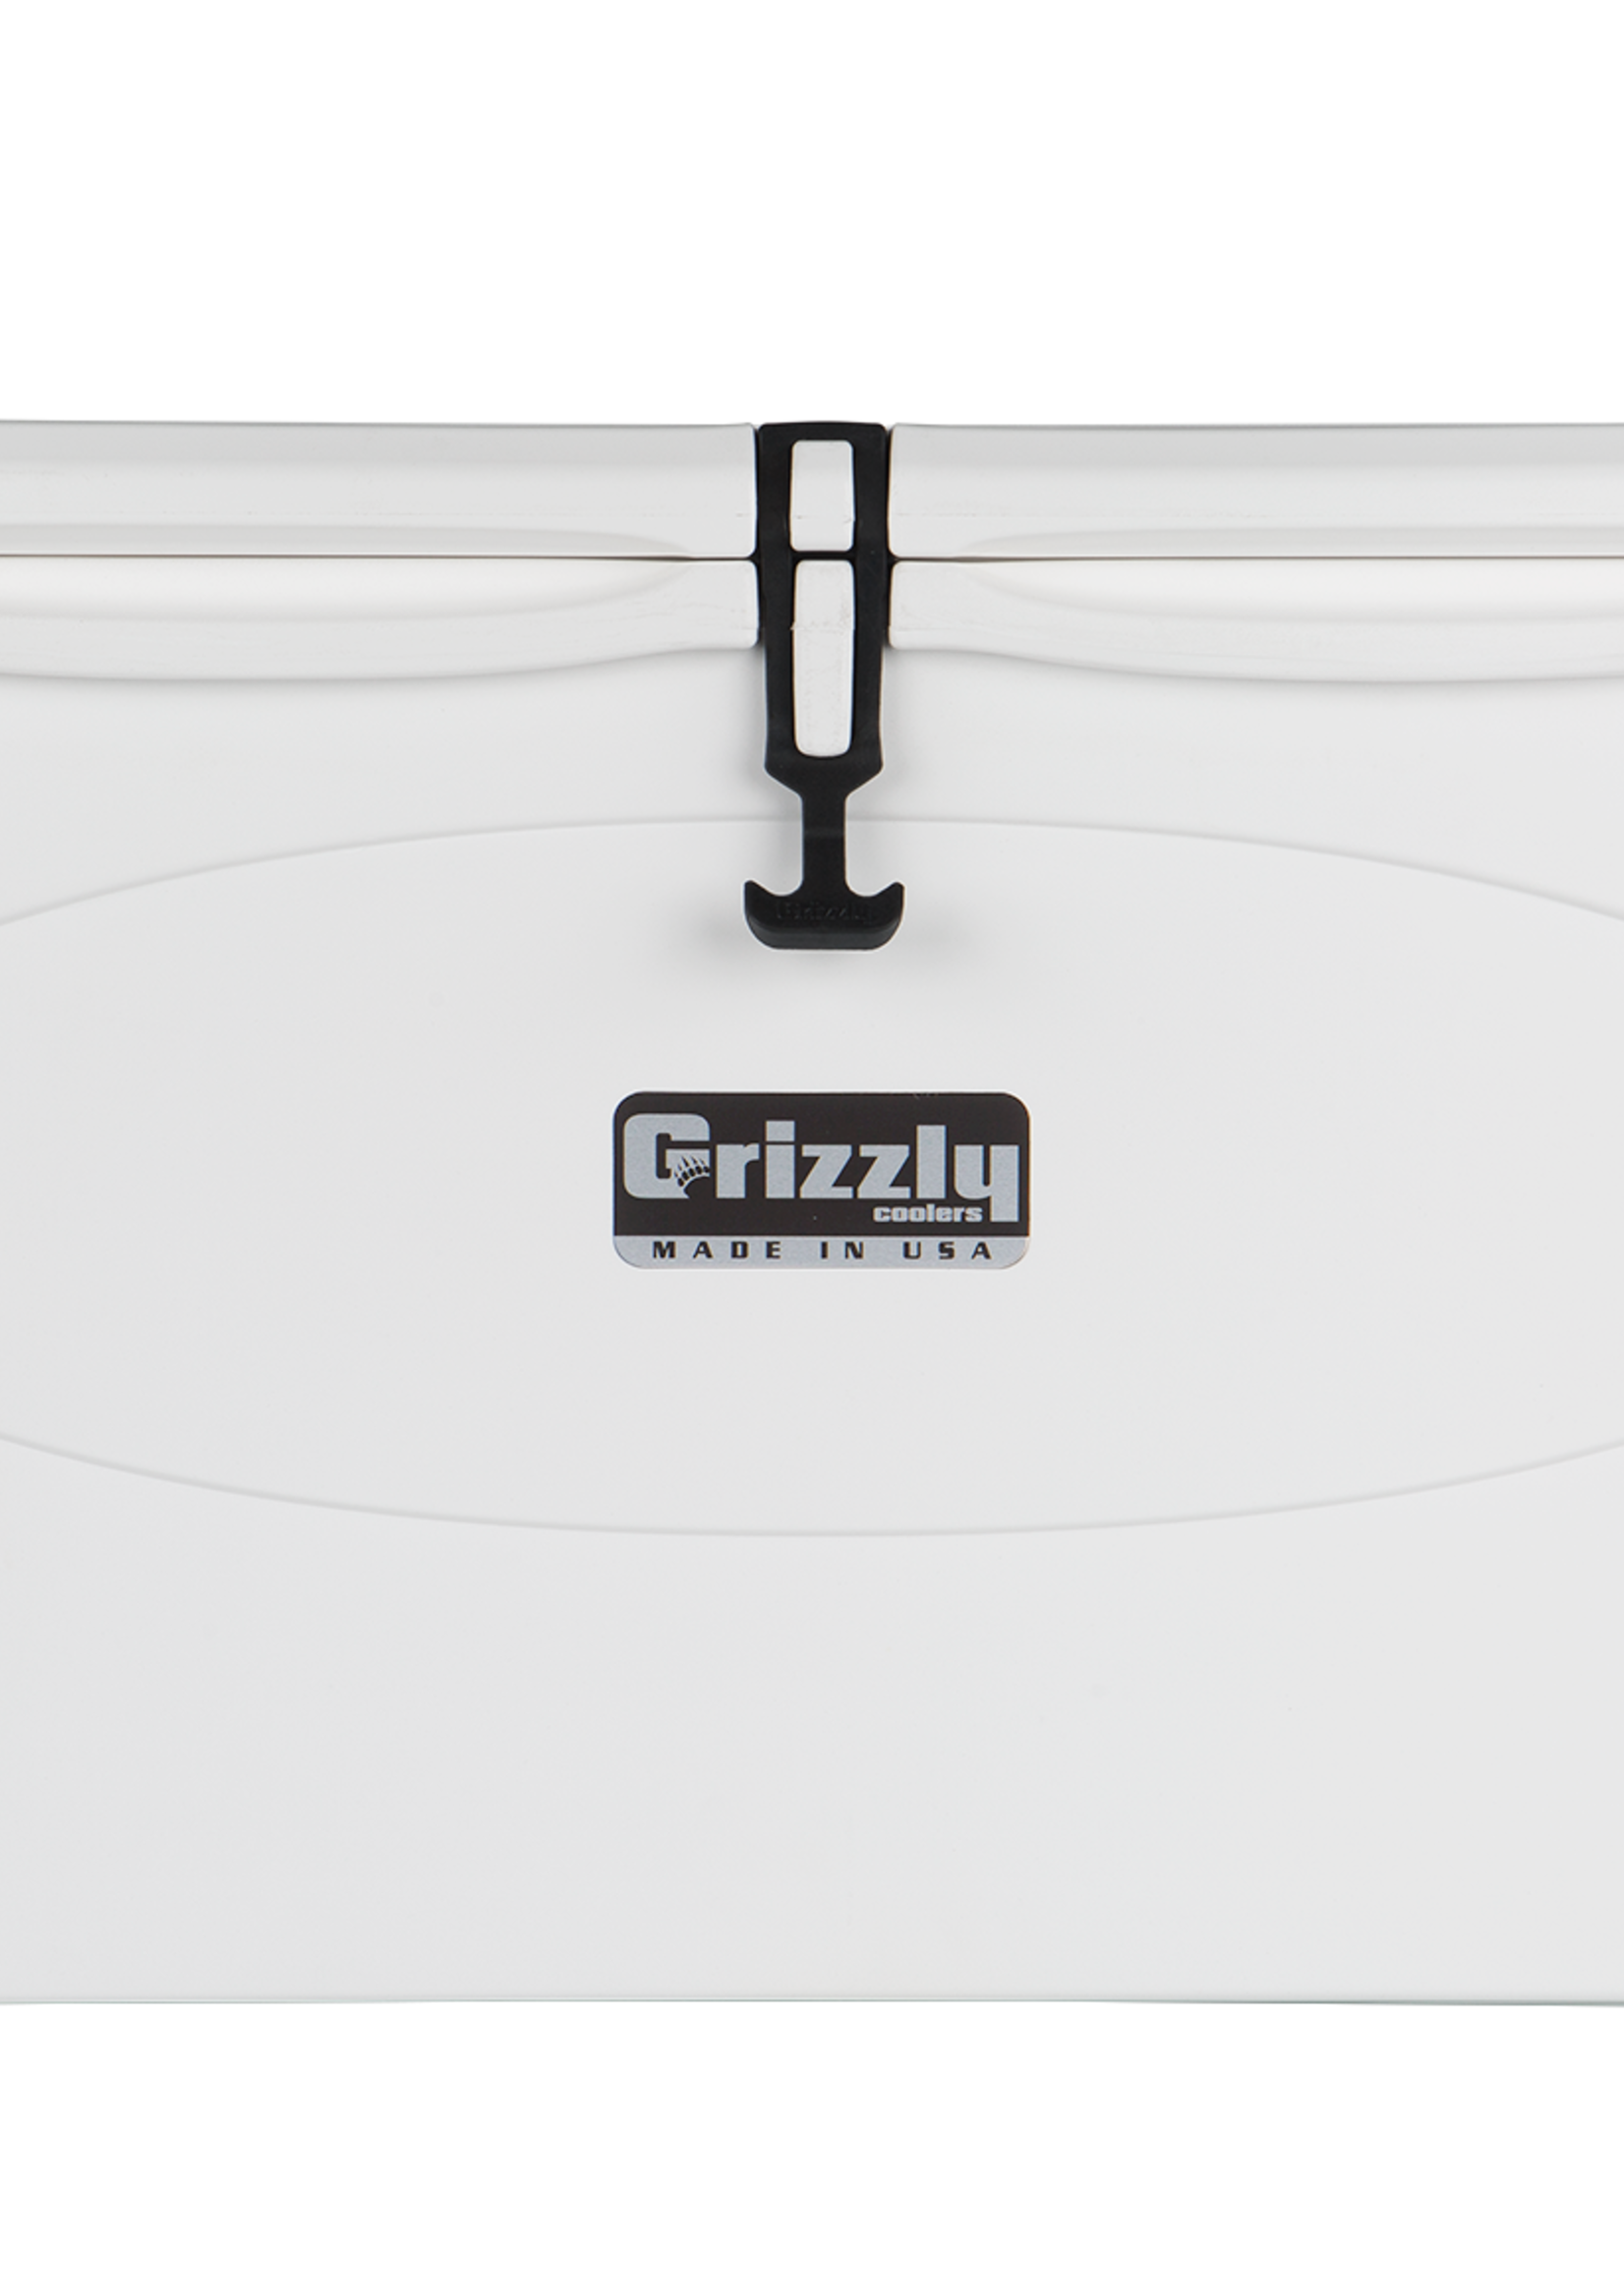 Grizzly Coolers Grizzly 100 Cooler